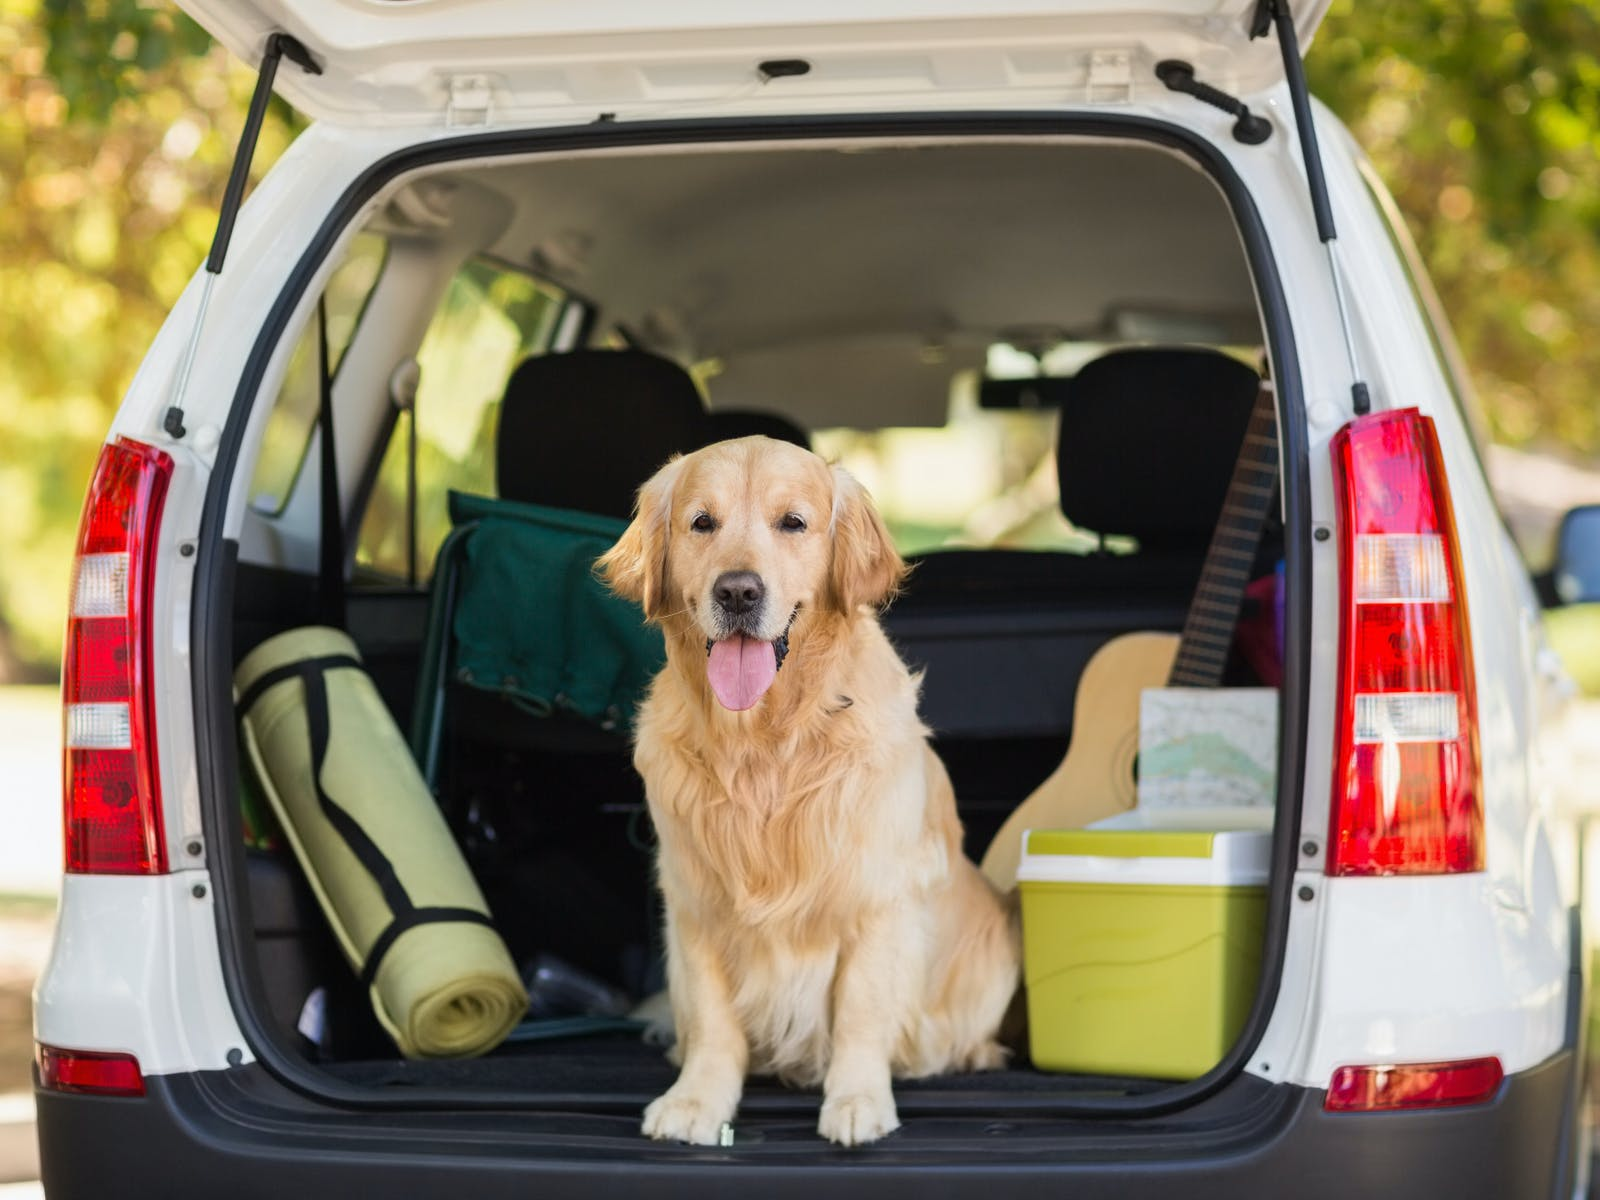 Dog in trunk of car packed with luggage